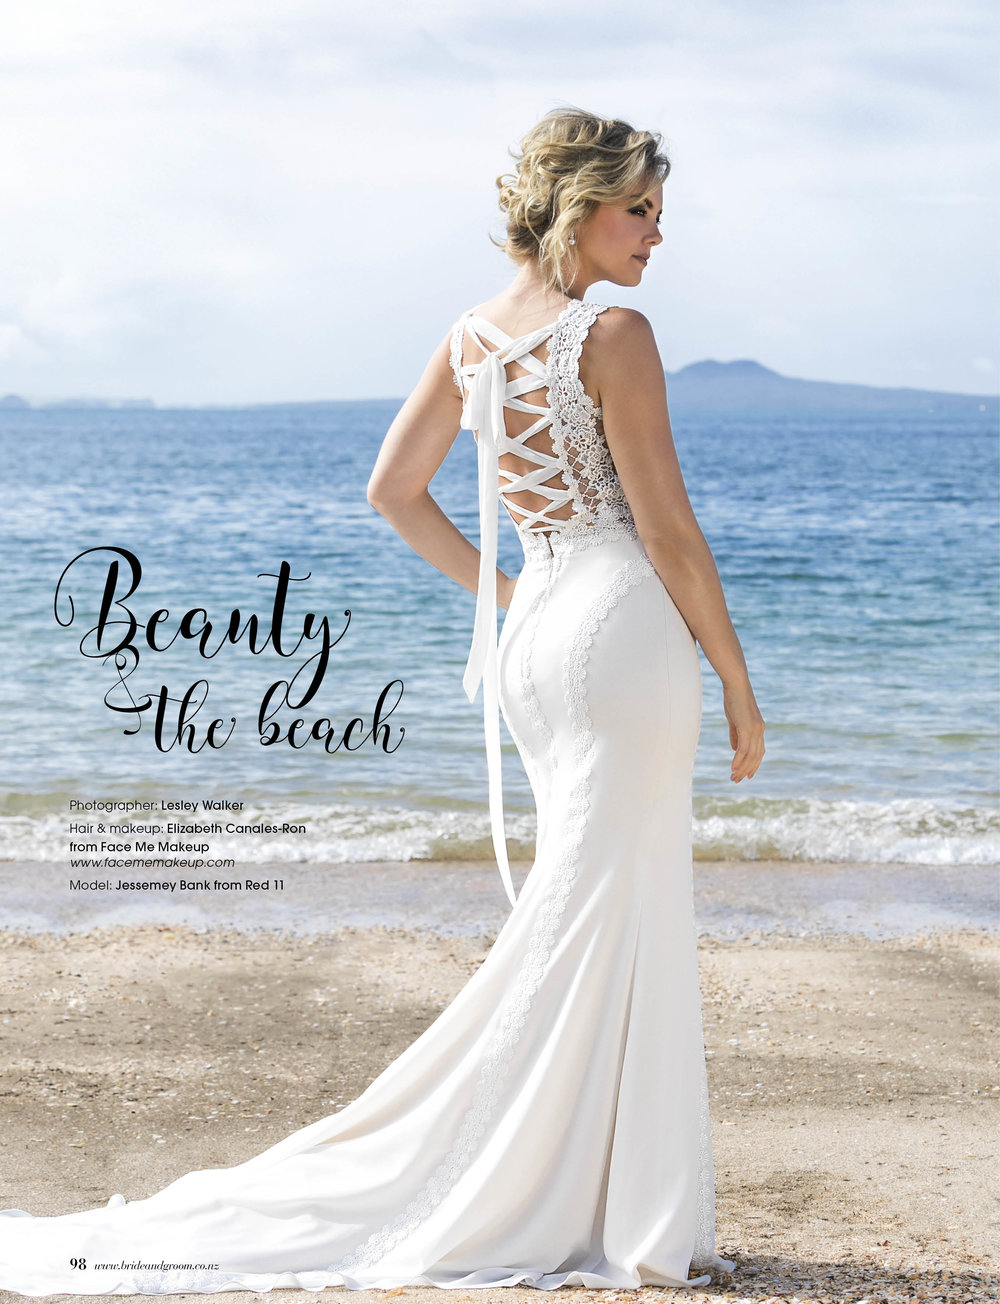 BG96 Beauty & the beach Astra Bridal.jpg